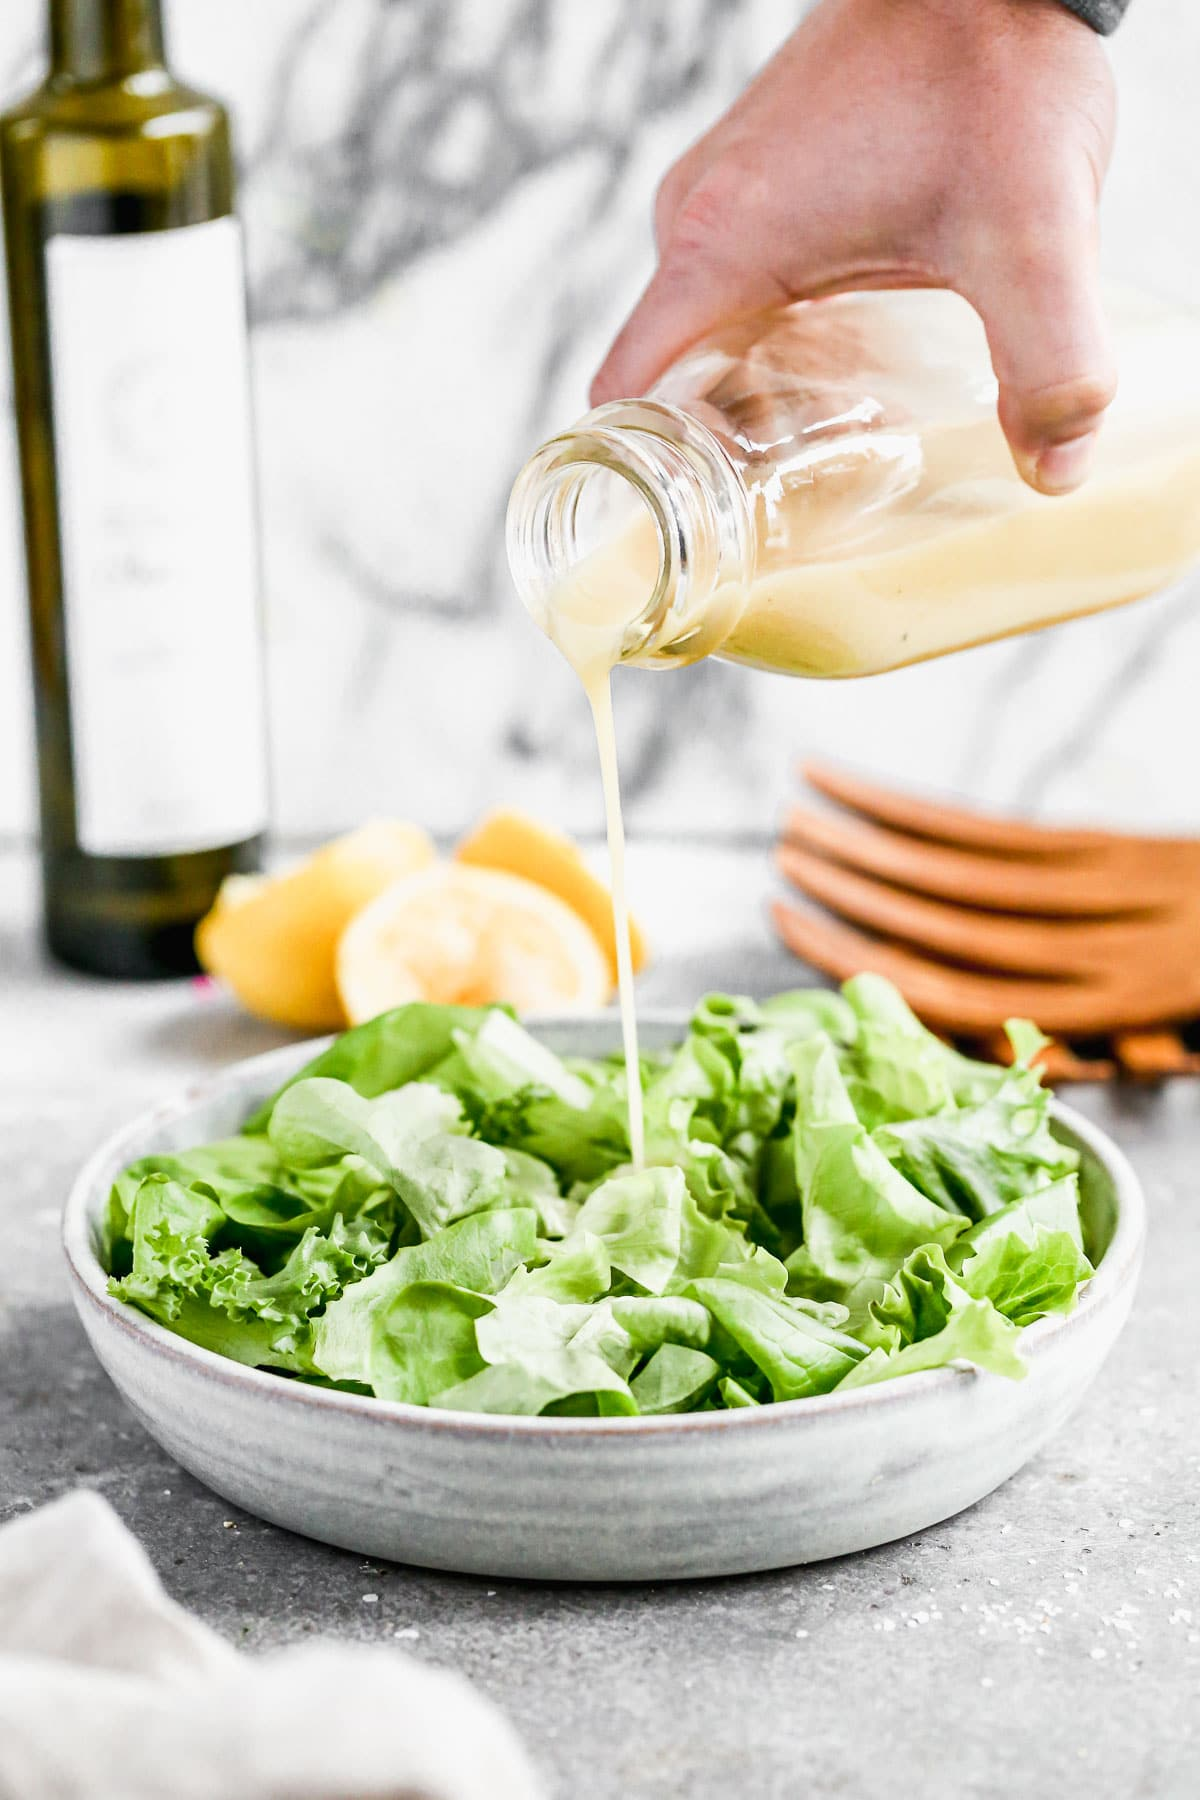 With hints of tang from dijon mustard, a slight sweetness from honey, and of course plenty of citrusy punch from lemon juice, our Easy Lemon Dijon Vinaigrette is something you're going to want to keep in your fridge all year long. I'm also willing to bet the mere five ingredients required for this easy dressing are loitering around in your pantry this very minute.